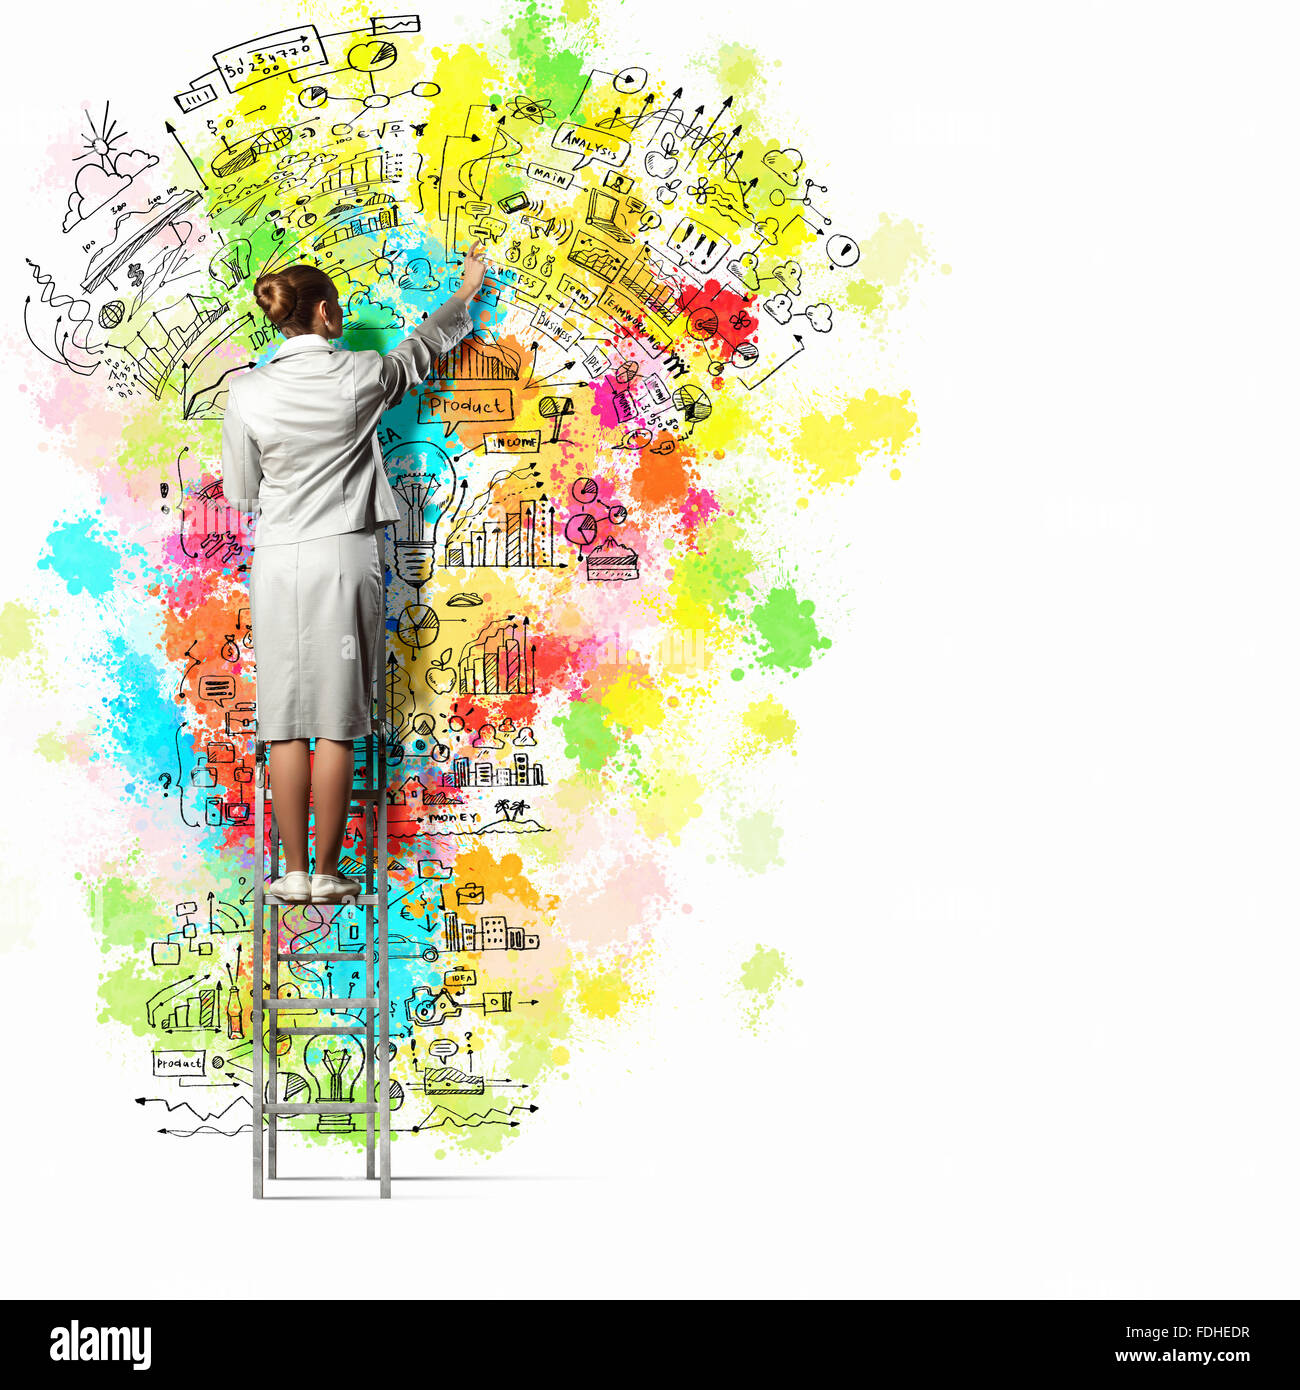 Back View Of Businesswoman Drawing Colorful Business Ideas On Wall